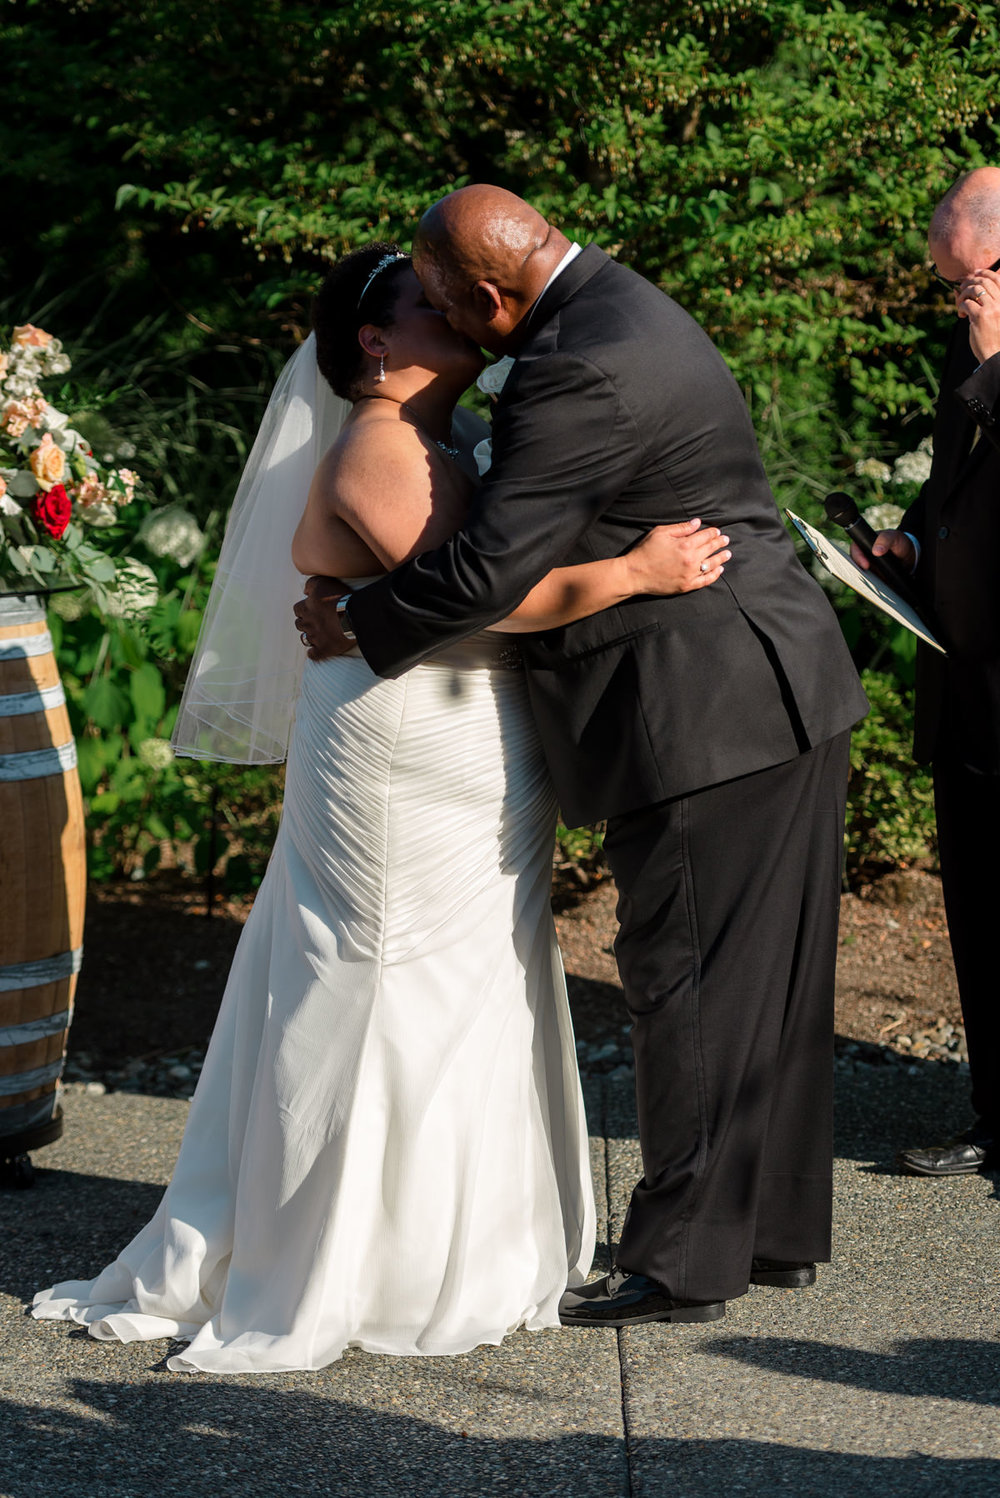 Andrew Tat - Documentary Wedding Photography - Columbia Winery - Woodinville, Washington -Patricia & Teffin - 15.jpg